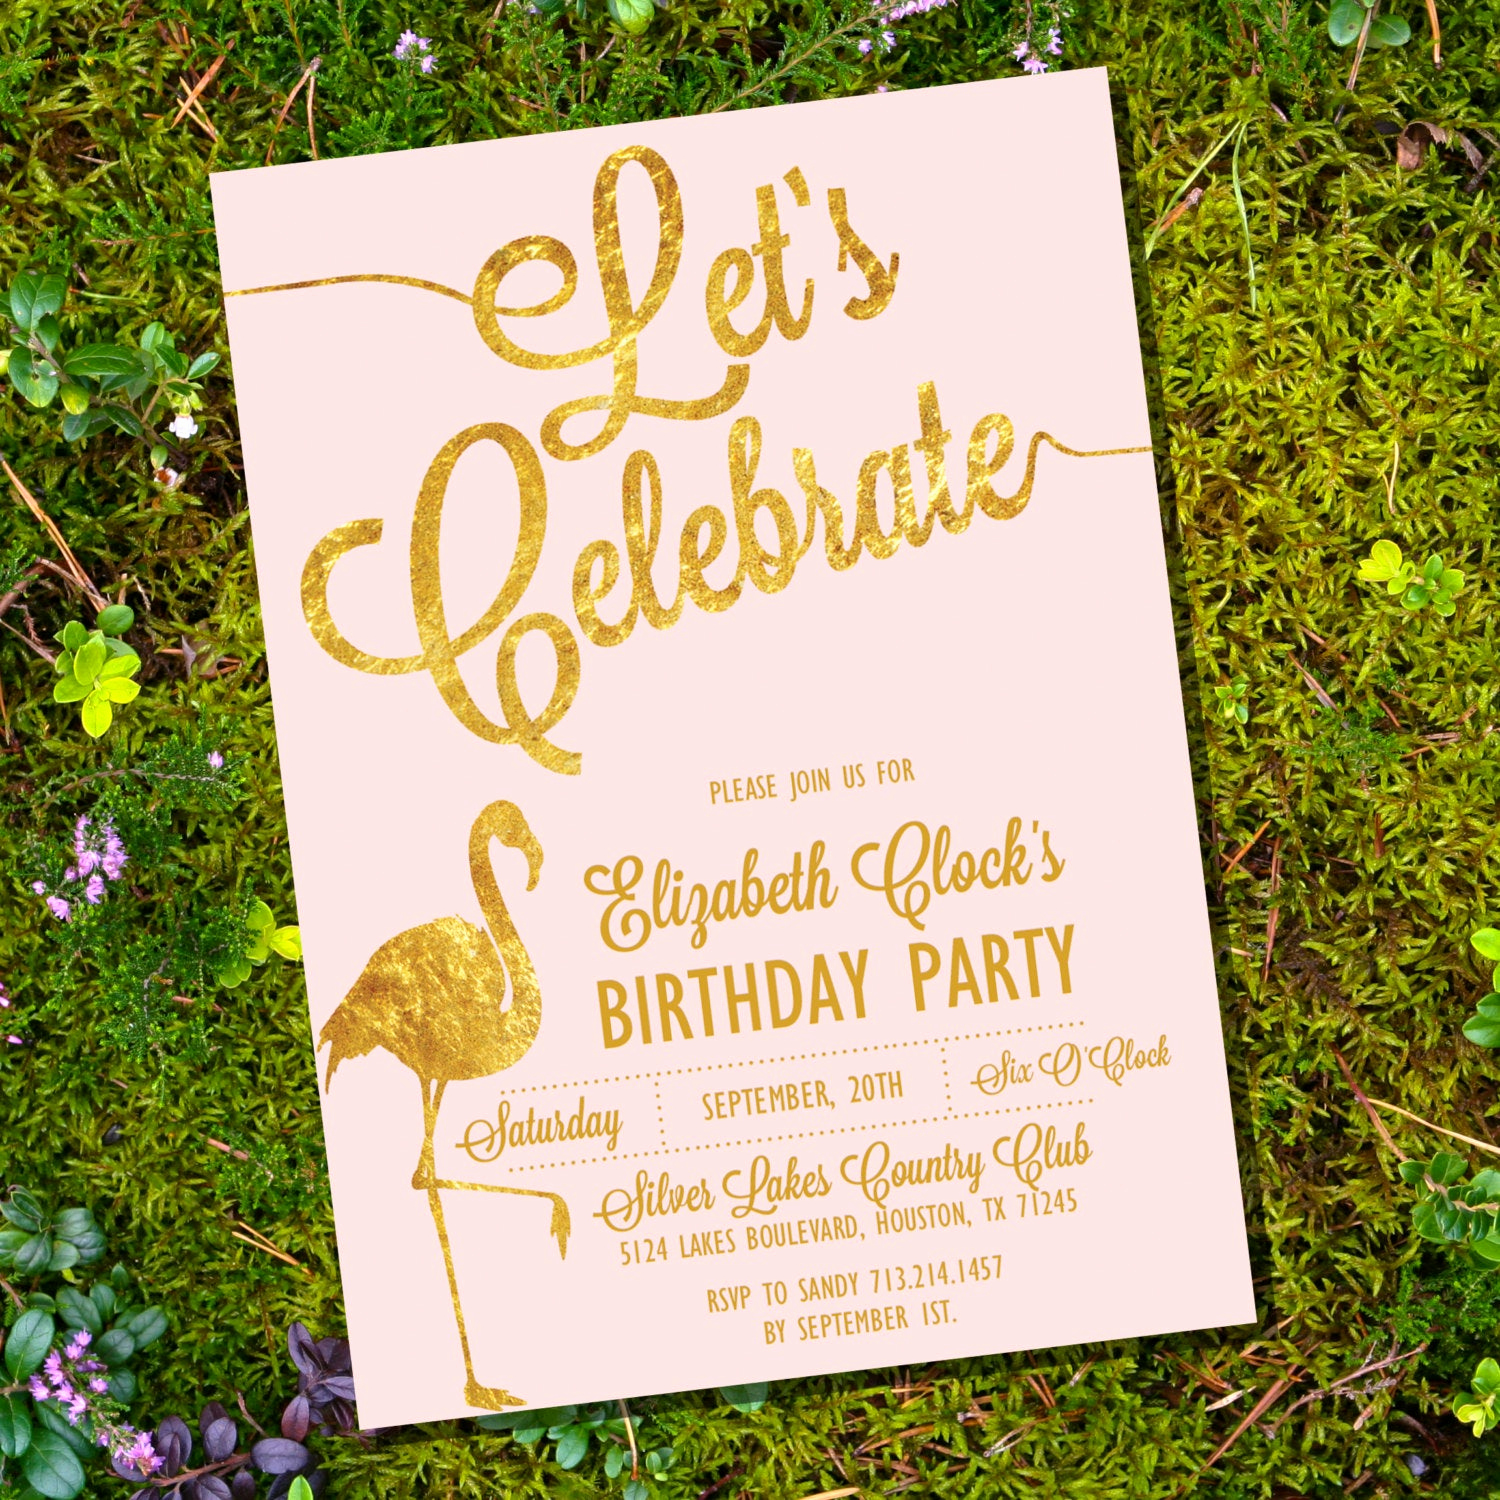 Pink and Gold Birthday Invitation Luxury Let S Celebrate Pink and Gold Birthday Invitation 40th